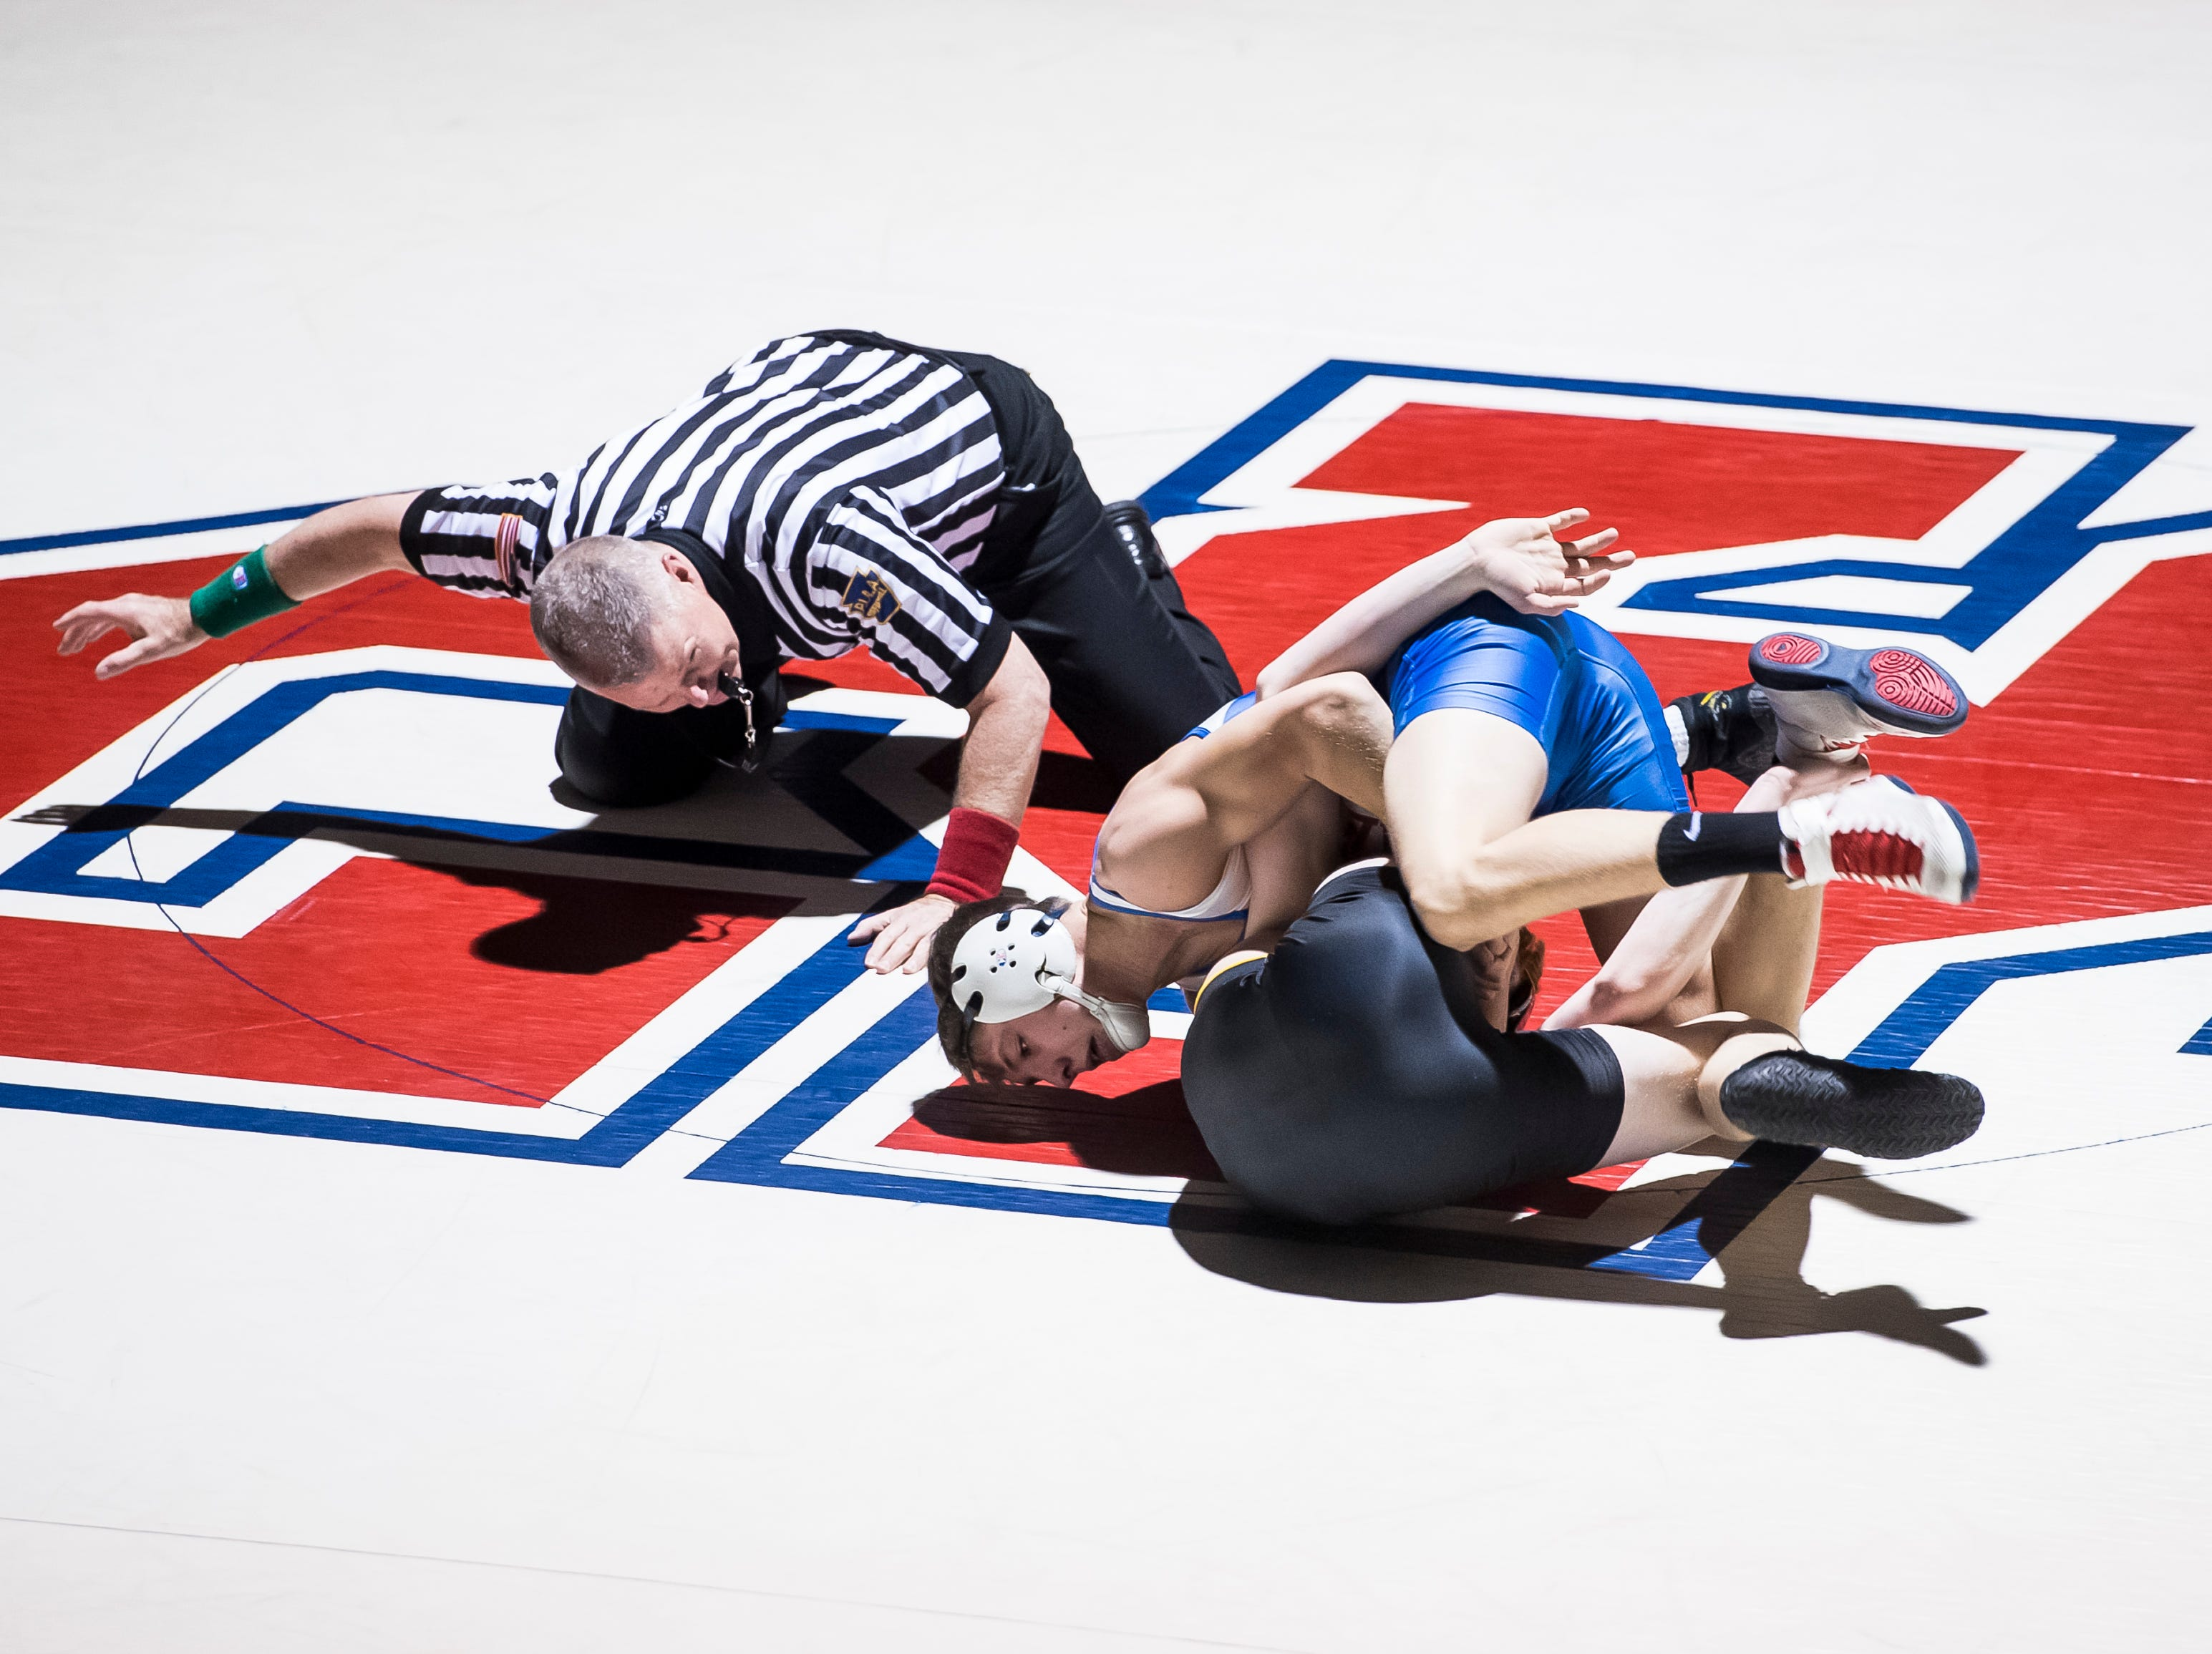 Spring Grove's Clay Baker (top) wrestles Red Lion's Ryan Fry in the 138-pound bout at Spring Grove High School on Wednesday, December 12, 2018. Baker won by a technical fall and the Rockets won, 68-9.